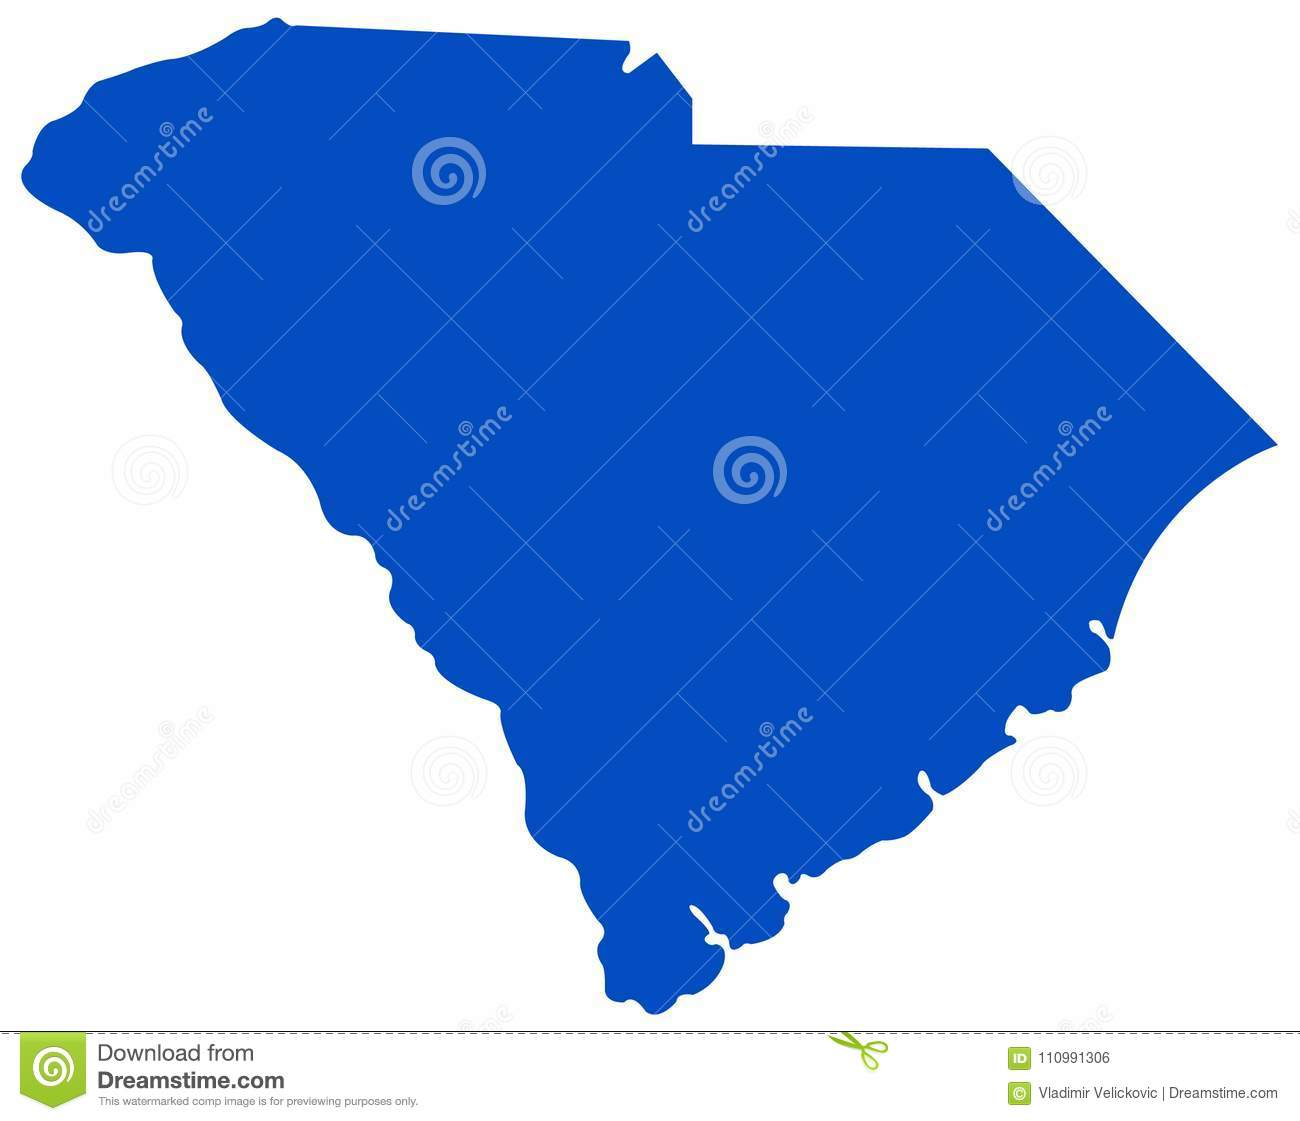 South Carolina Map State In The Southeastern Region Of The United